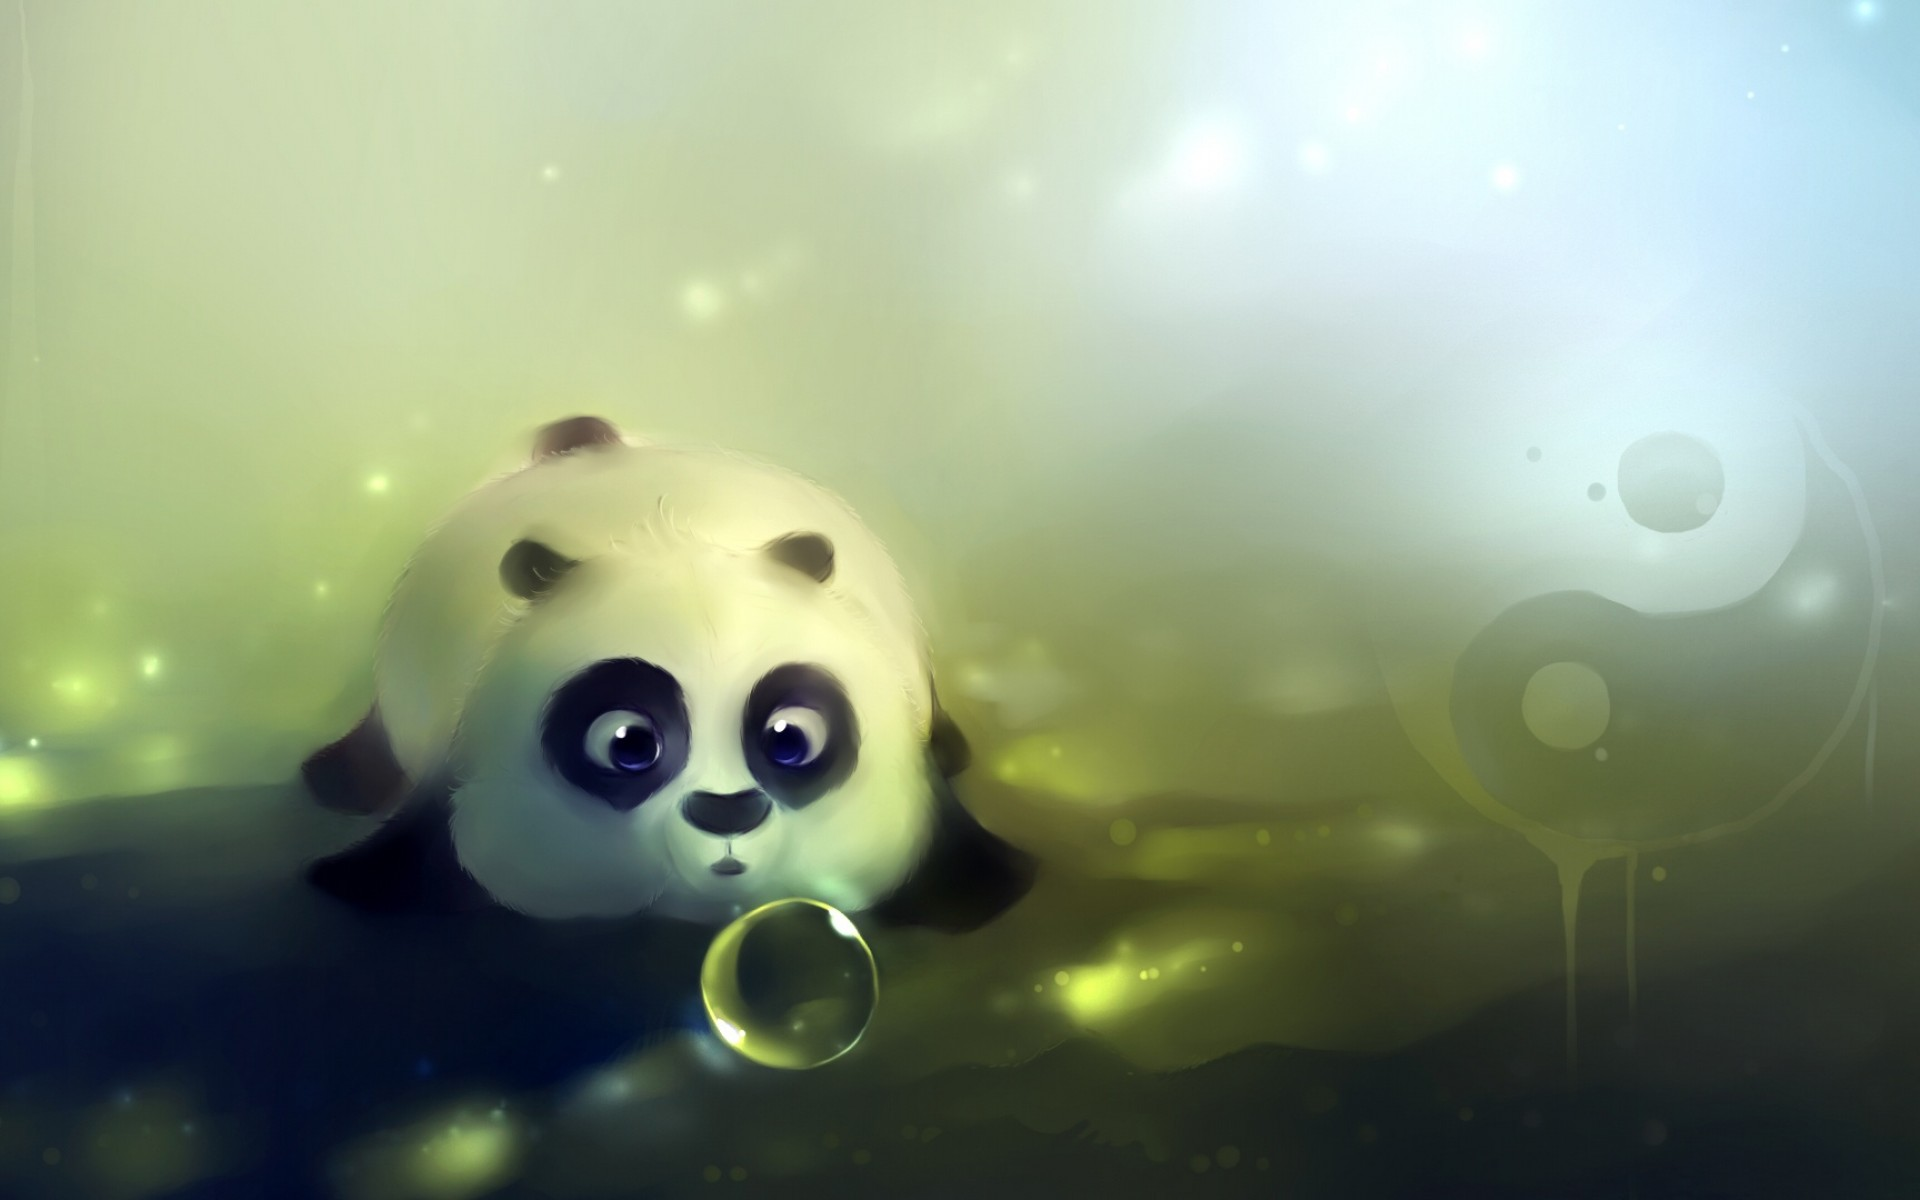 Collection of Cute Backgrounds For Desktop on HDWallpapers